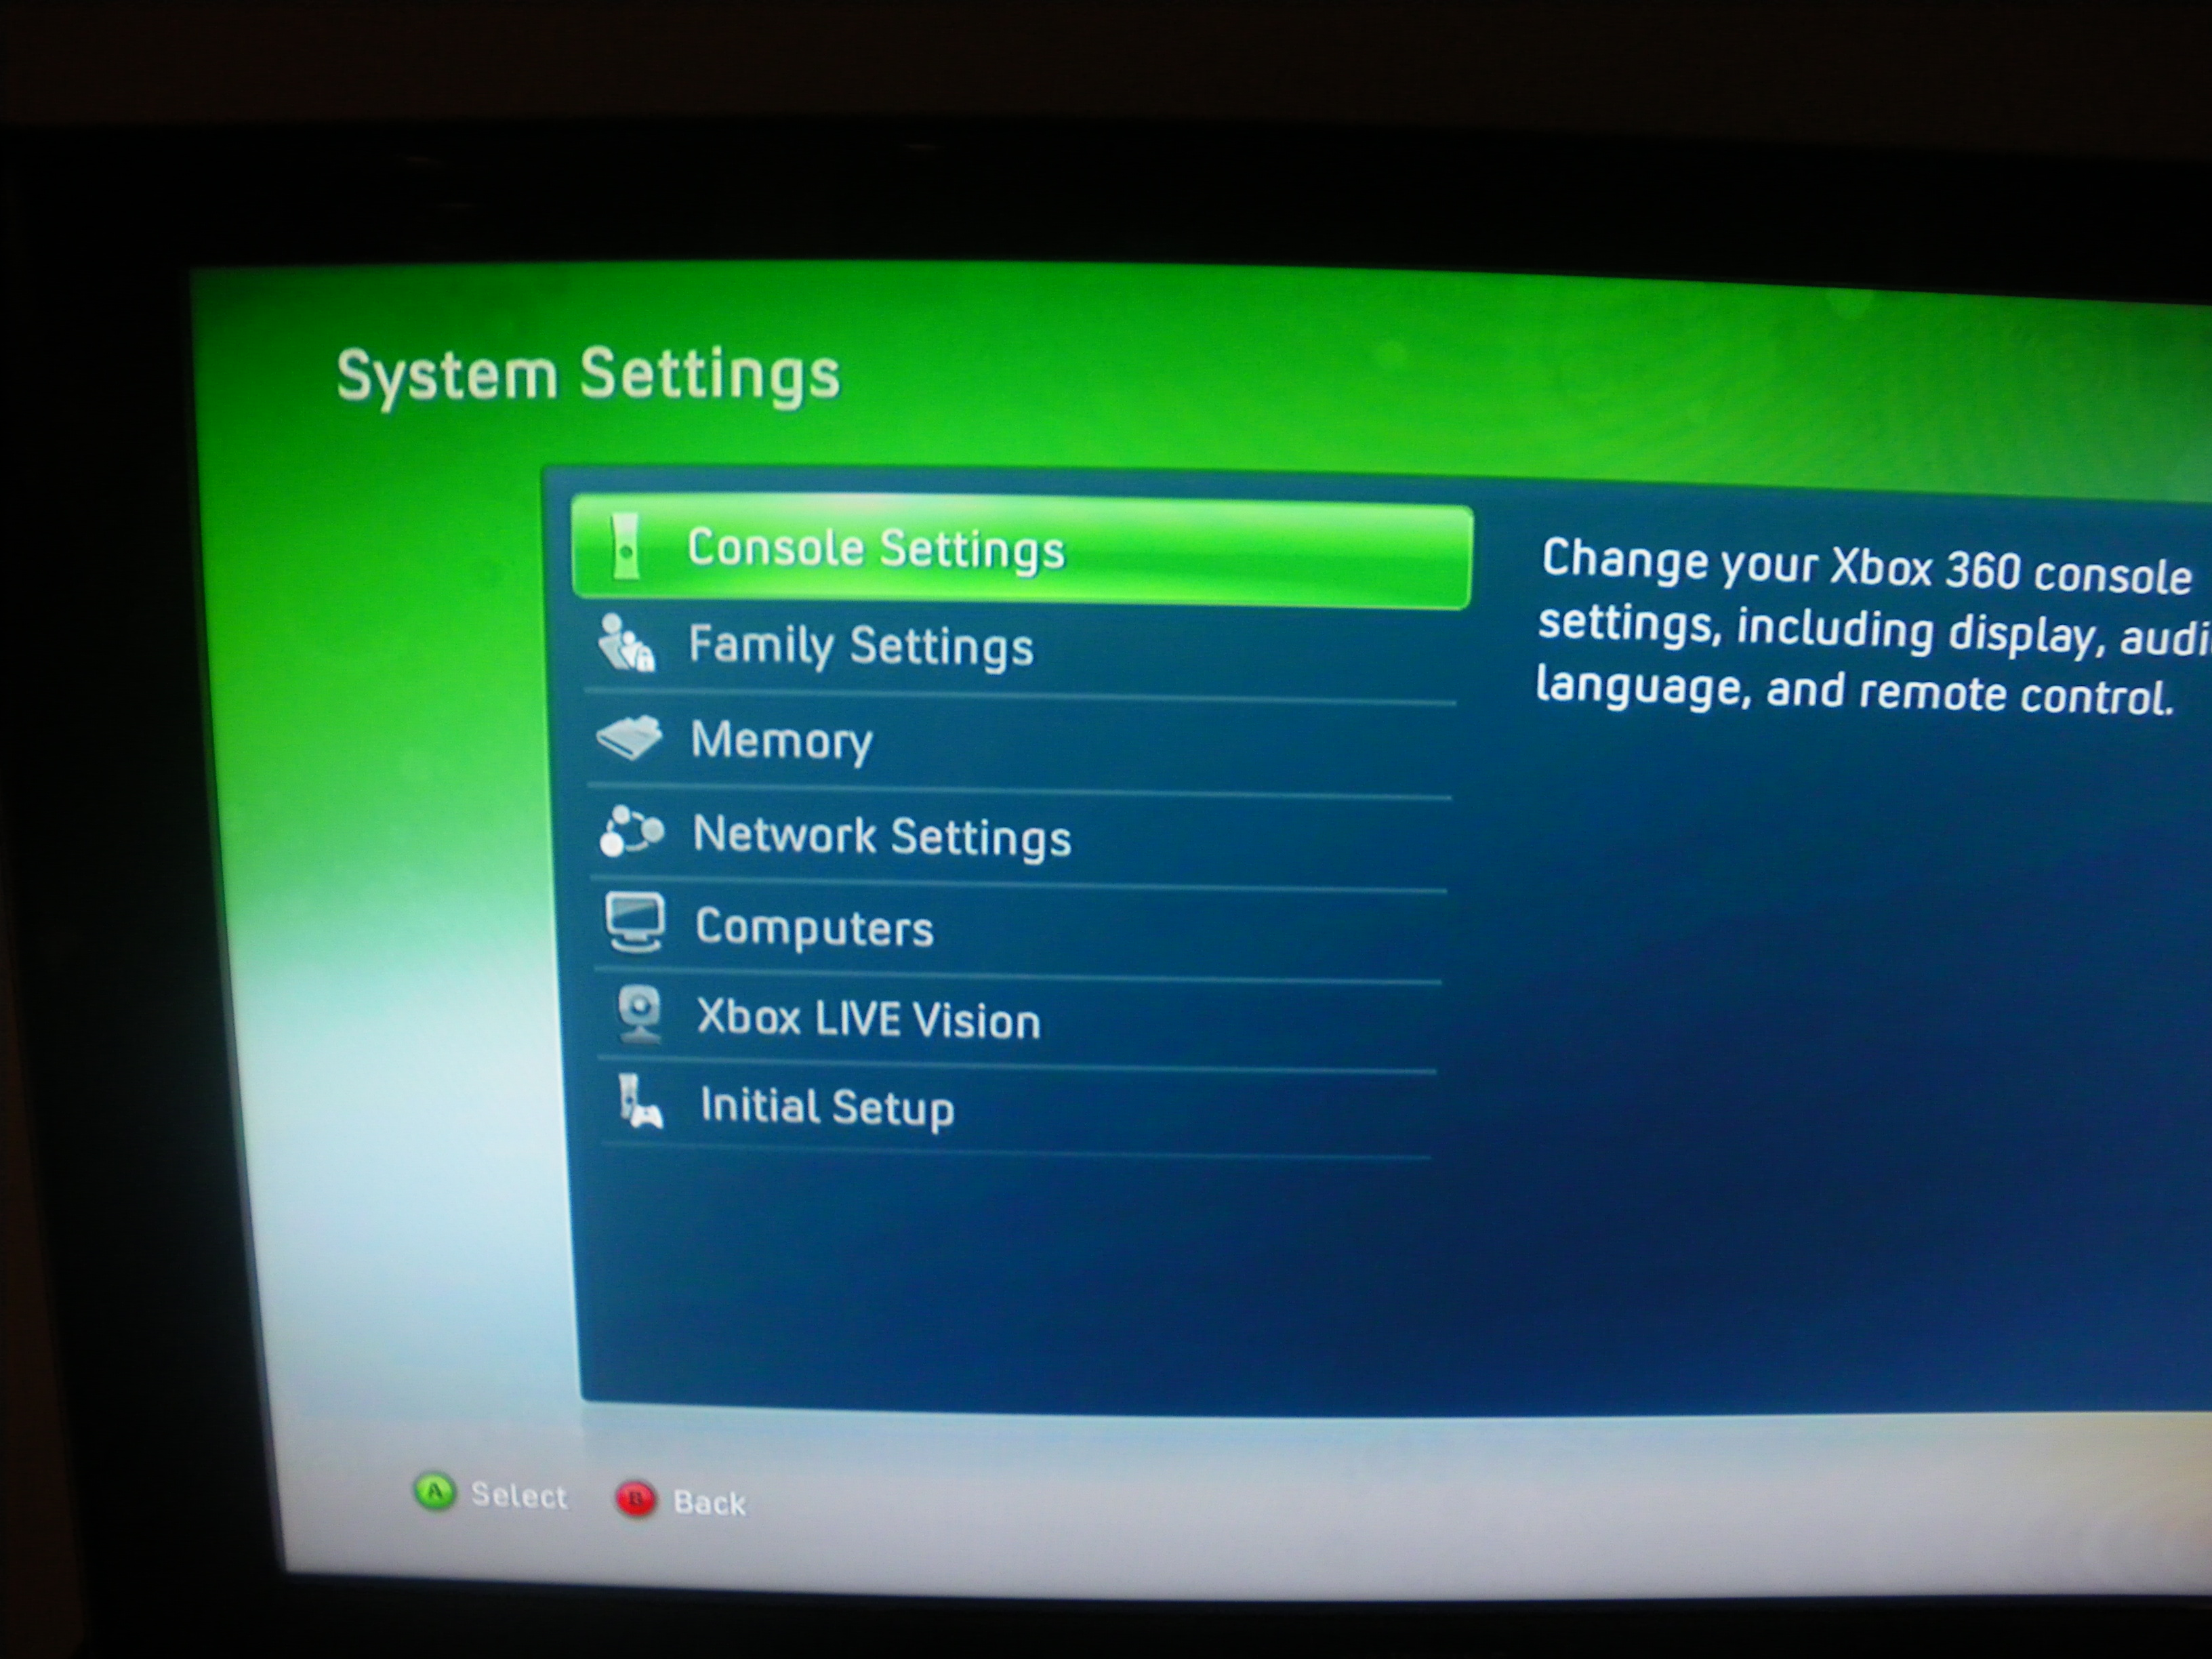 How to JTAG Your Xbox 360 and Run Homebrew: 10 Steps (with Pictures)